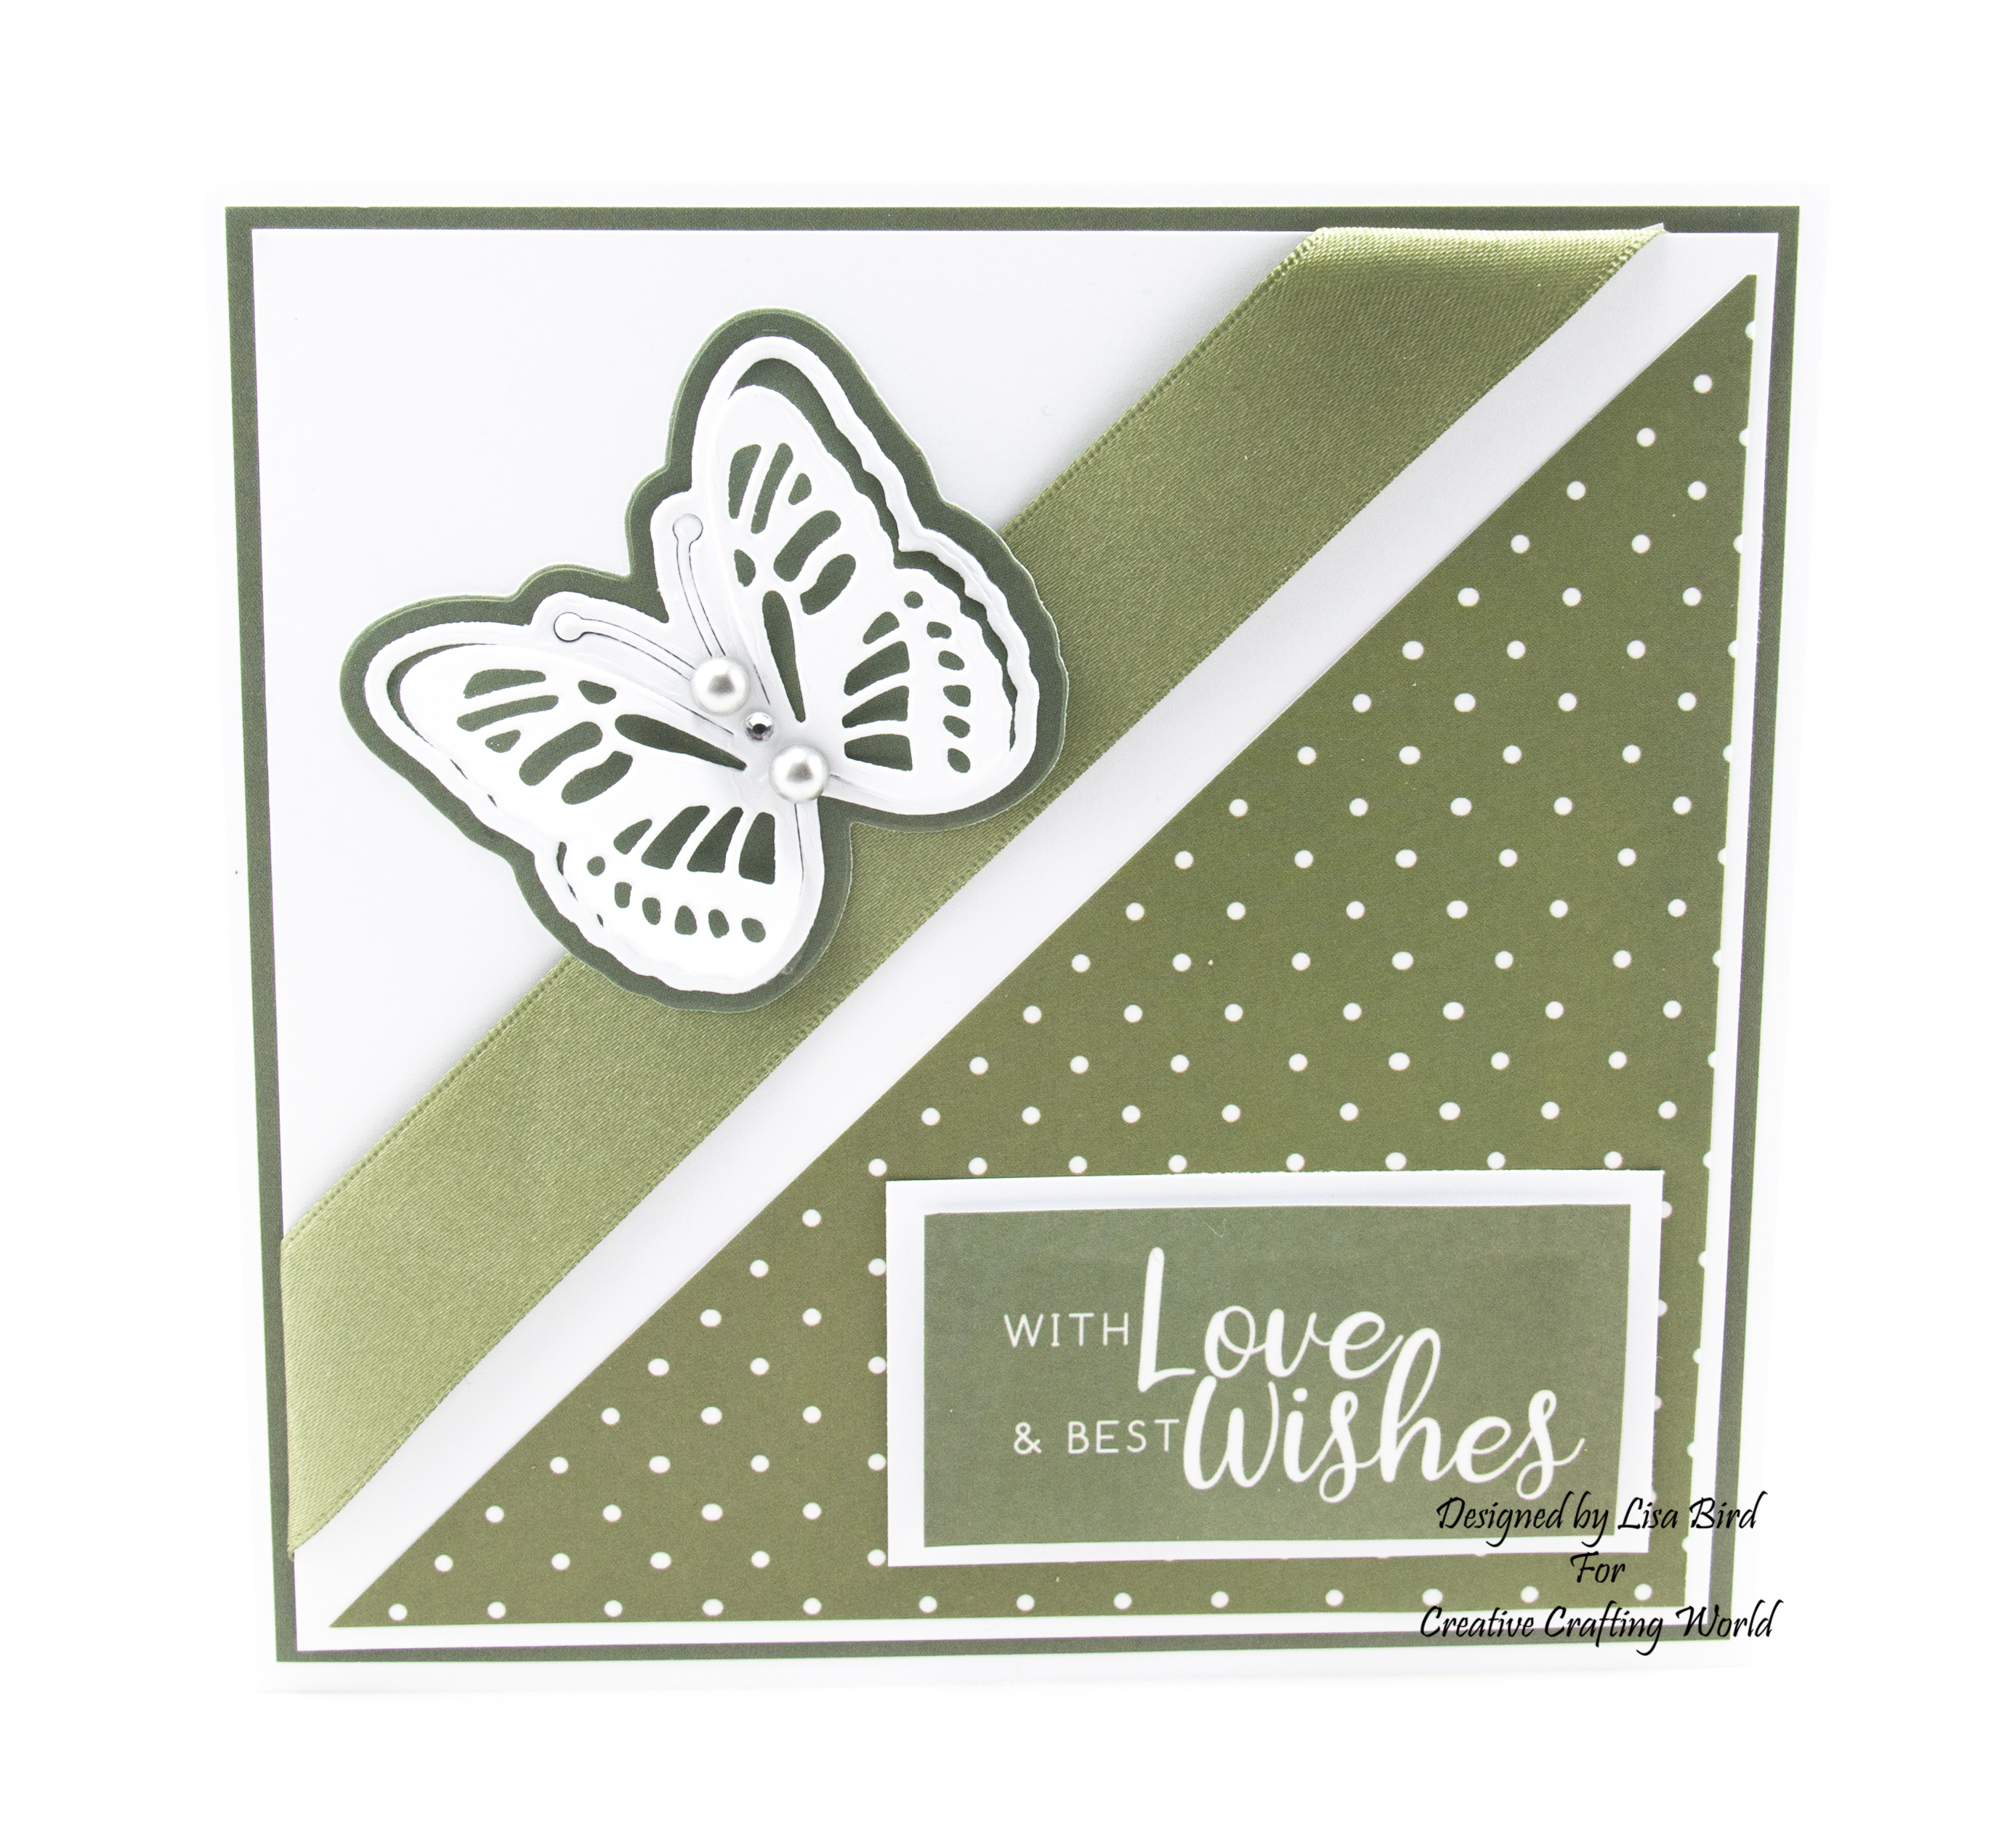 Handmade card using blossom in breeze paper collection